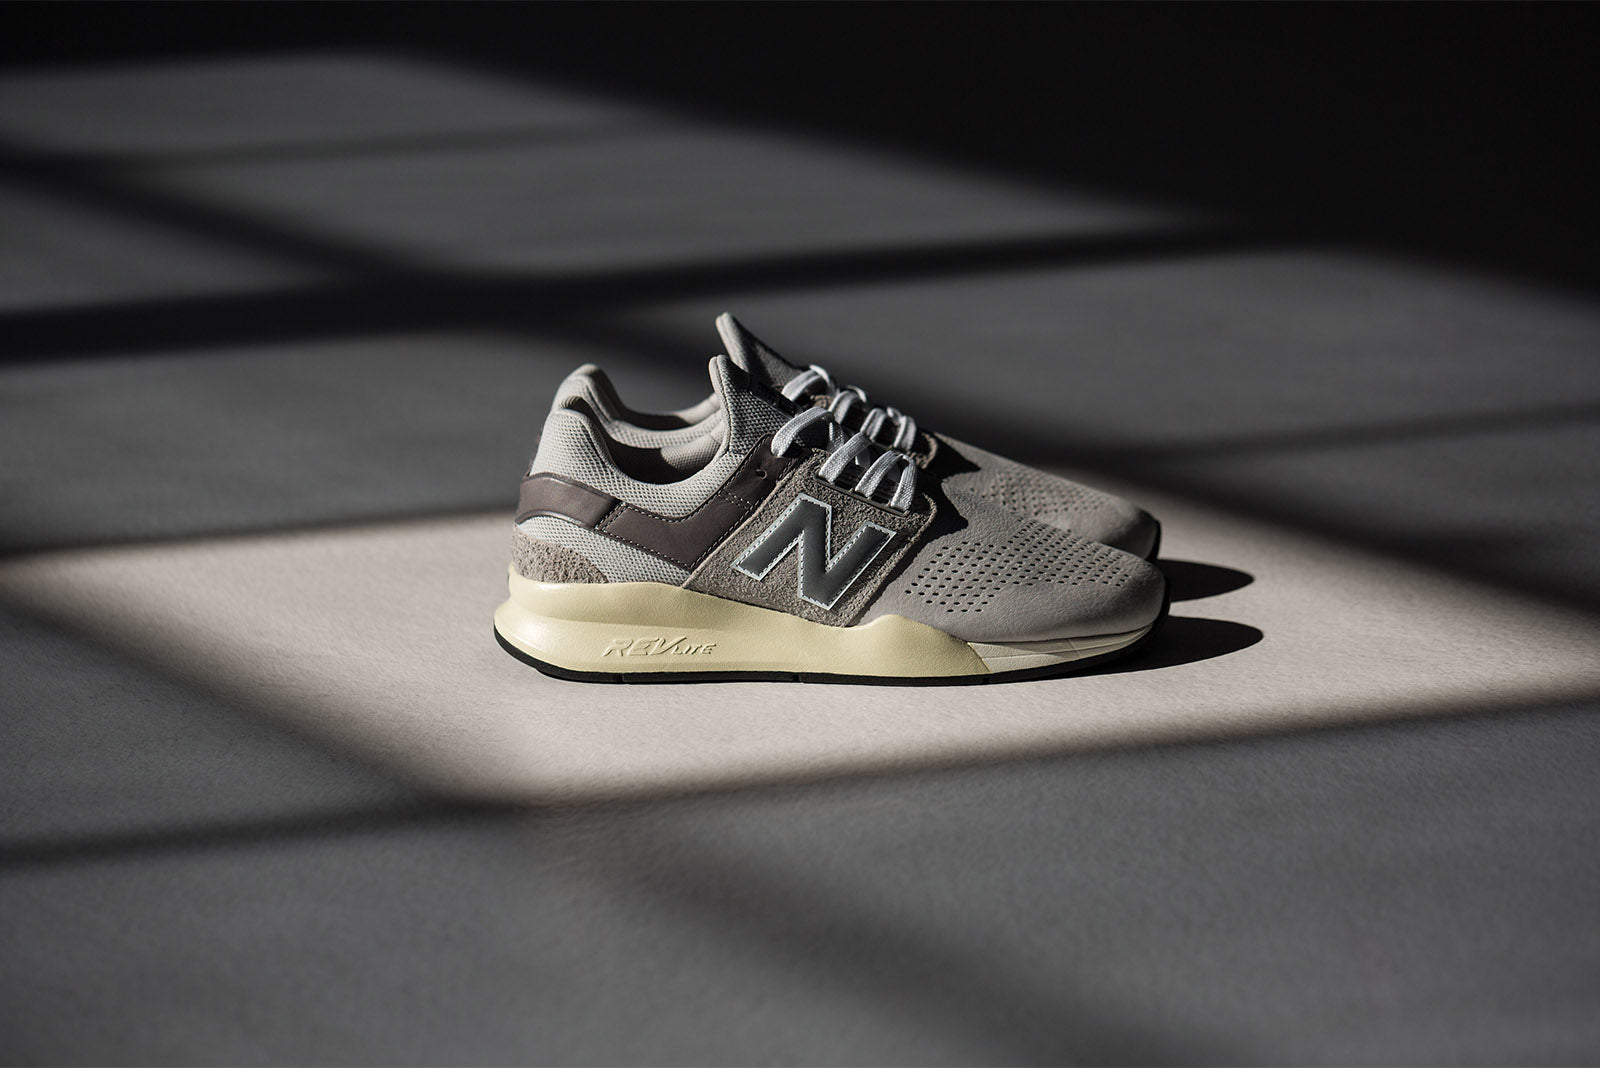 f270dbd942 The 247v2 is a contemporary progression of the original 247 which first  arrived in early 2017. The updated version makes a nod to New Balance  heritage while ...